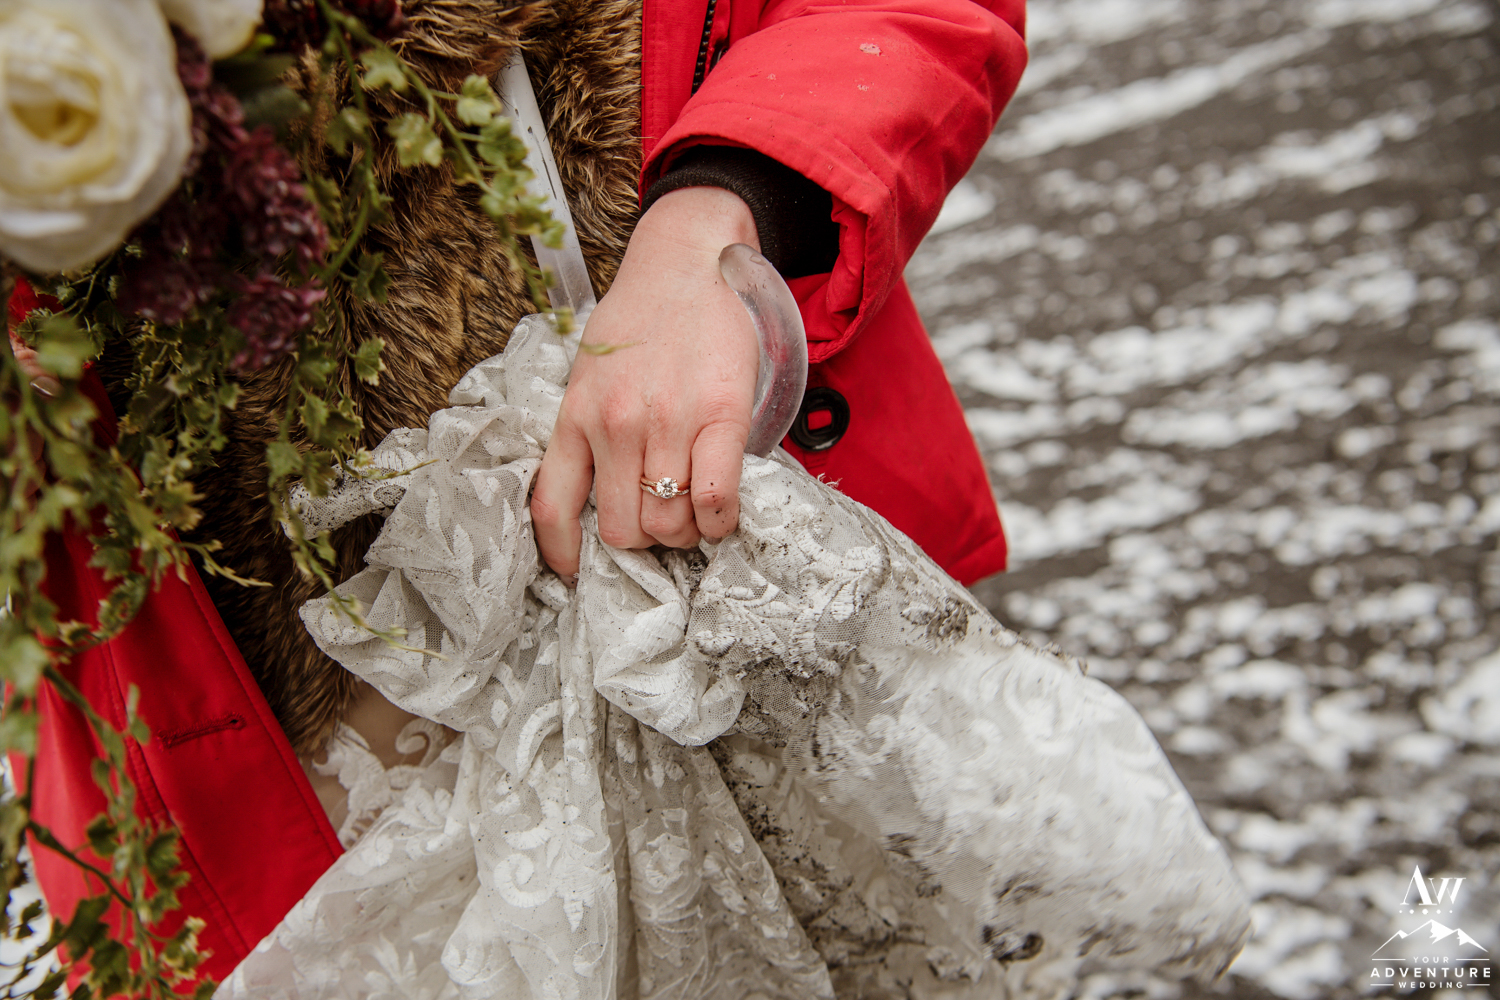 Close Up of Iceland Wedding Ring and Dress